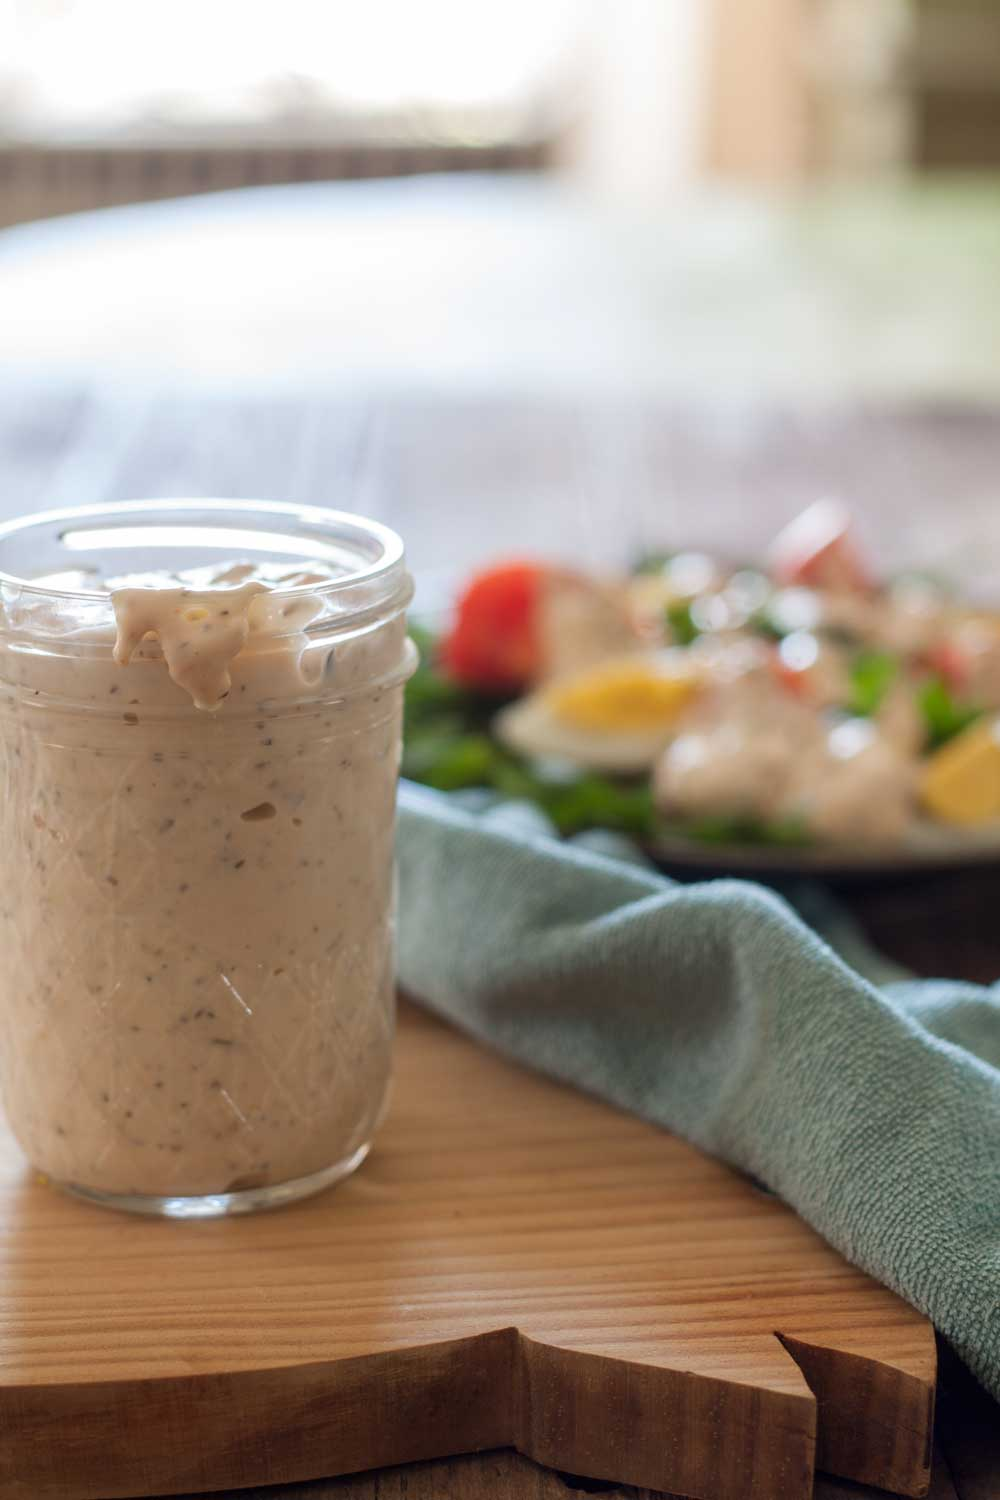 thousand island dressing in half pint jar on wooden board with blue napkin